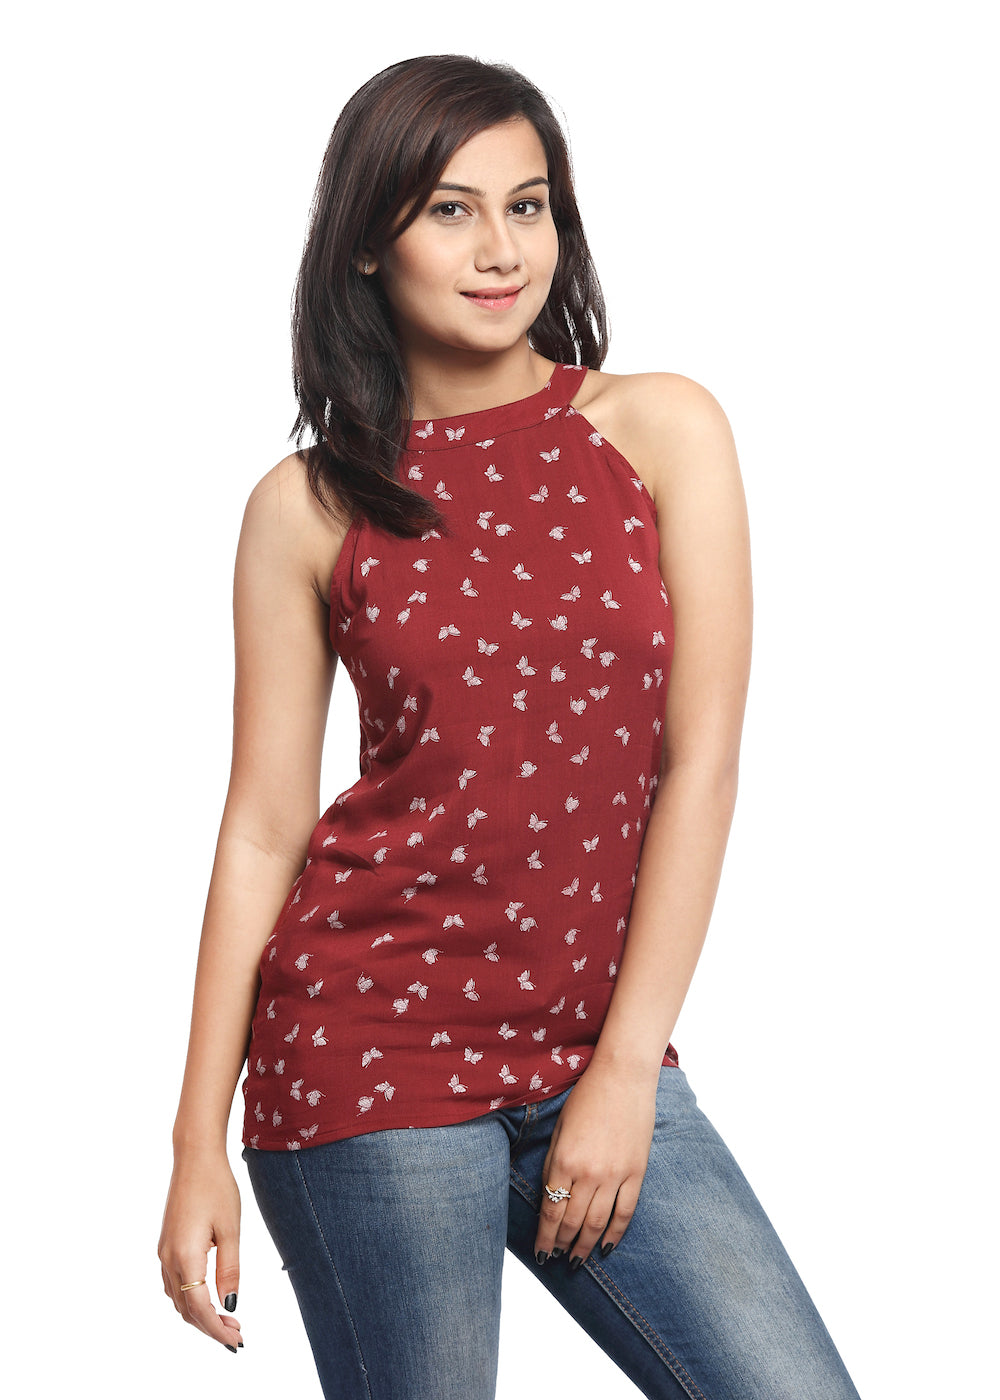 Maroon Halter Neck Top with Butterfly Print - GENZEE